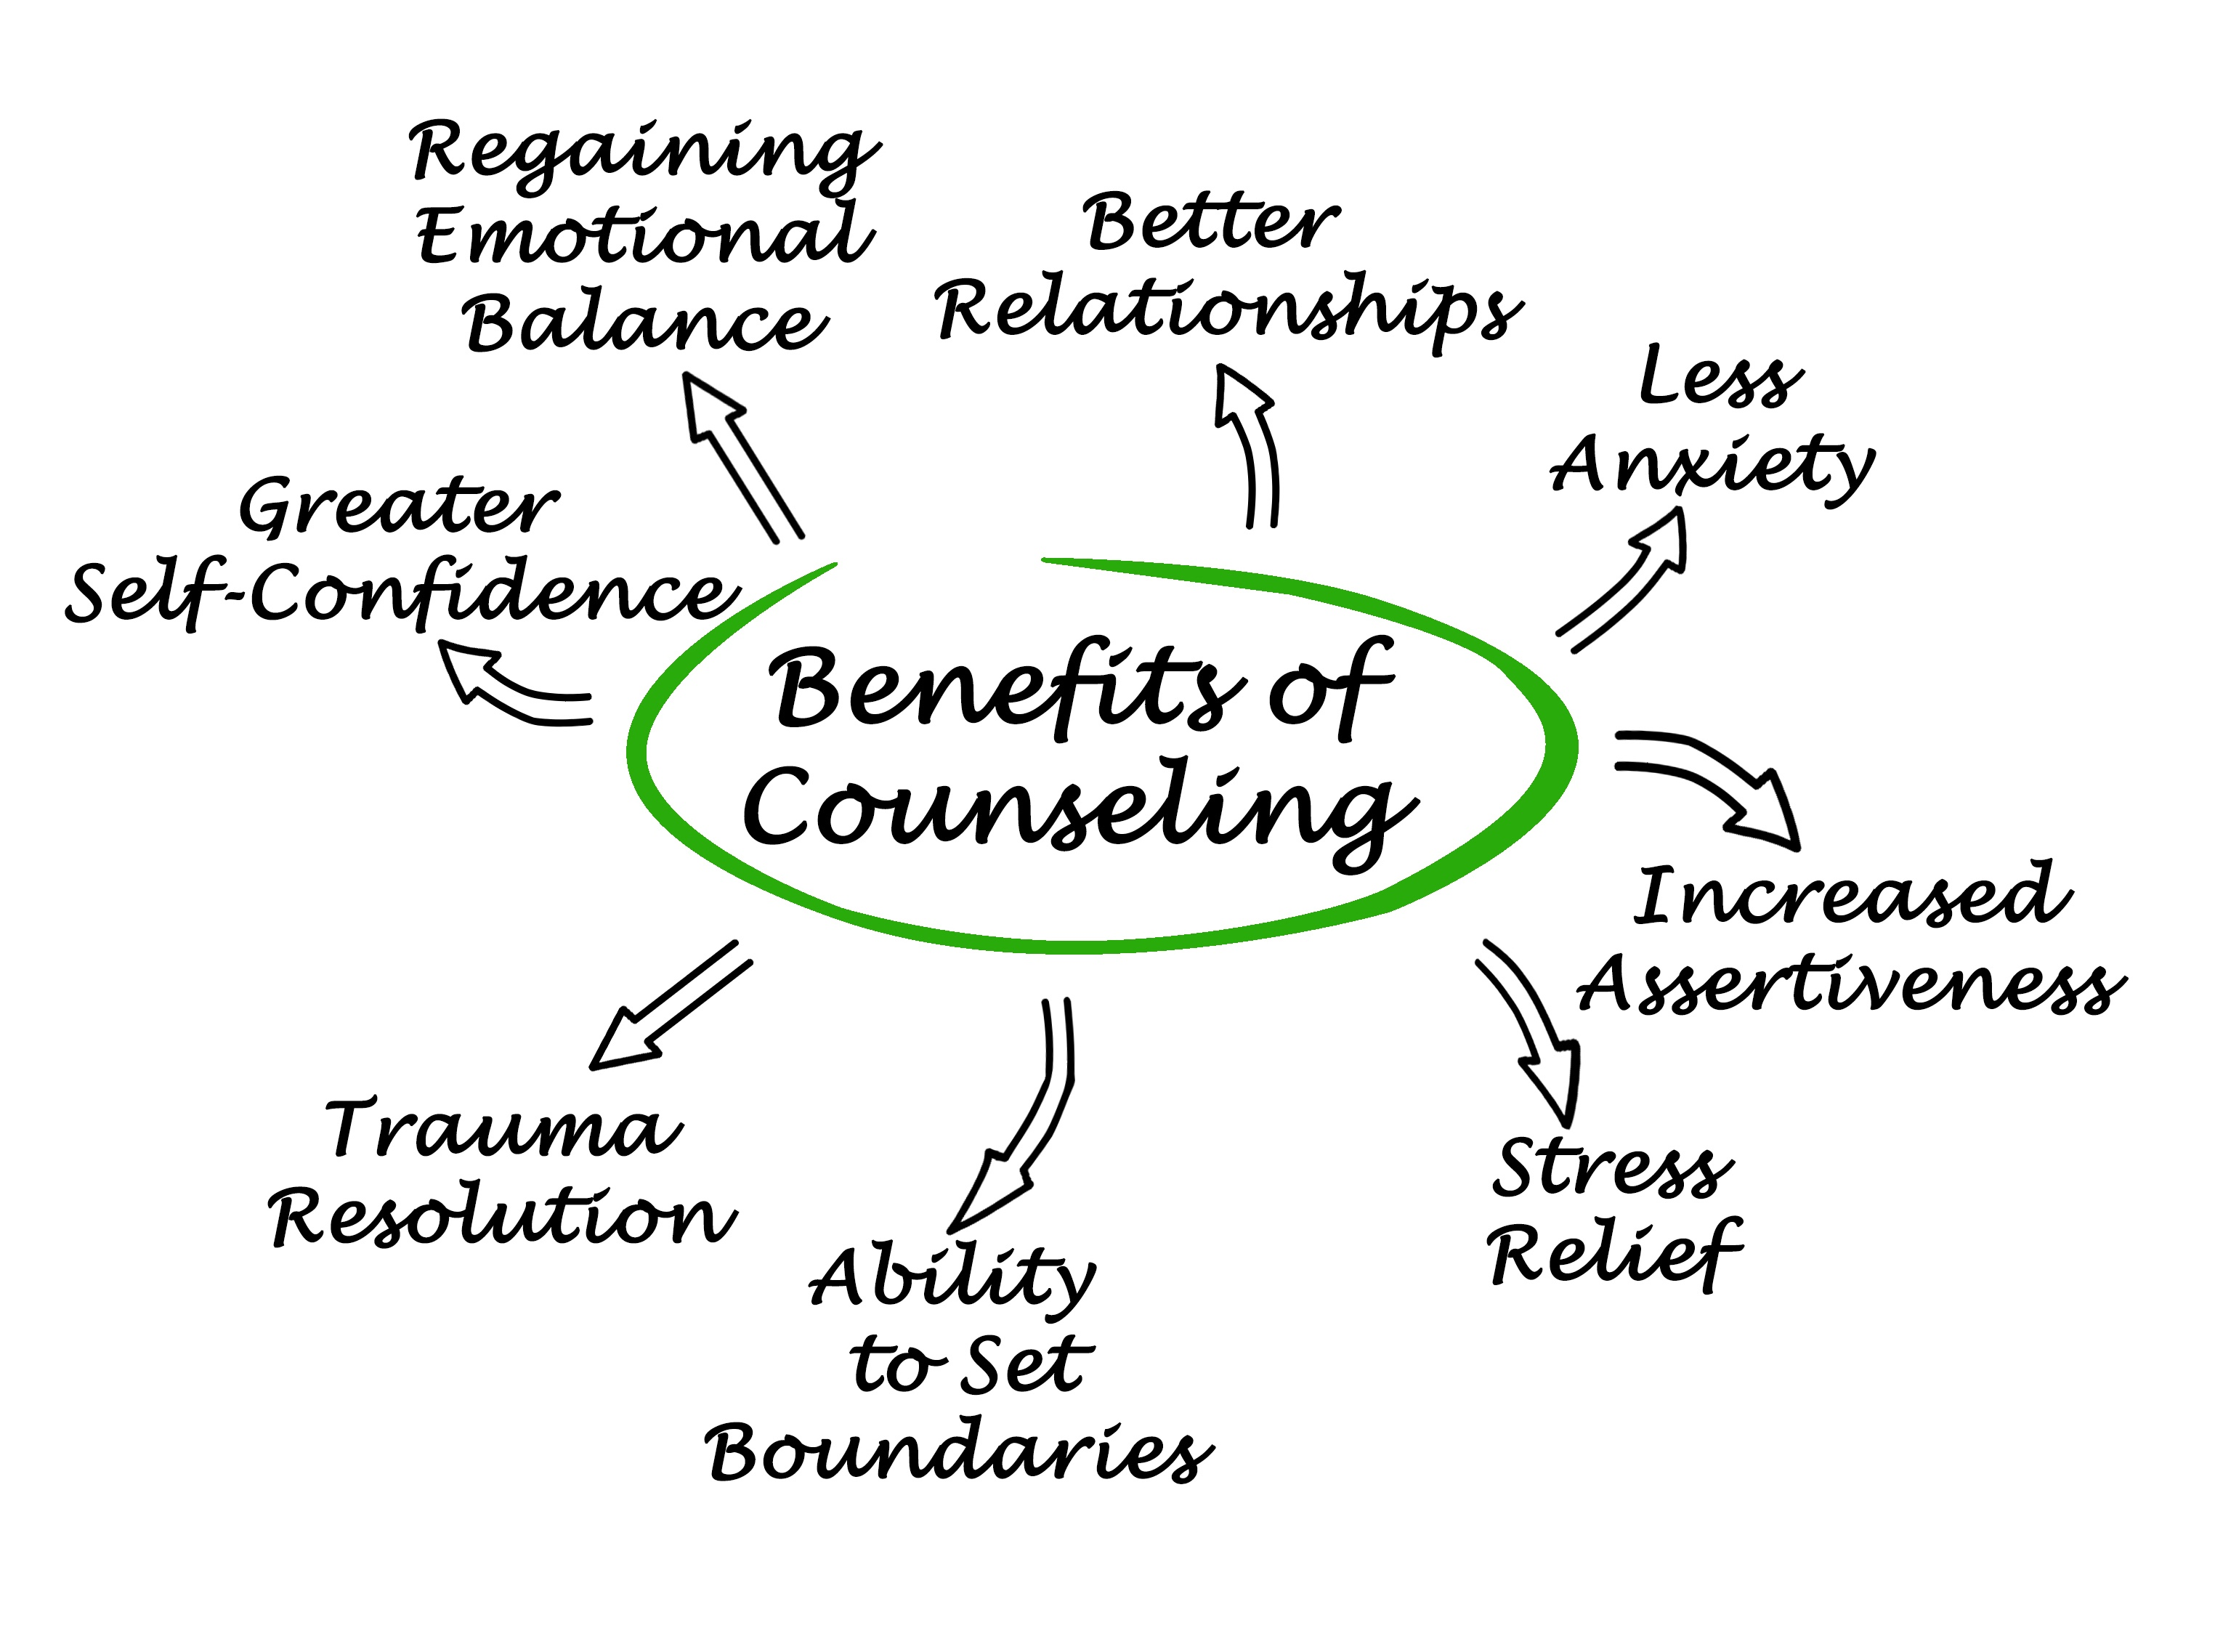 MindSpaceHelp, supplying the benefits of counselling